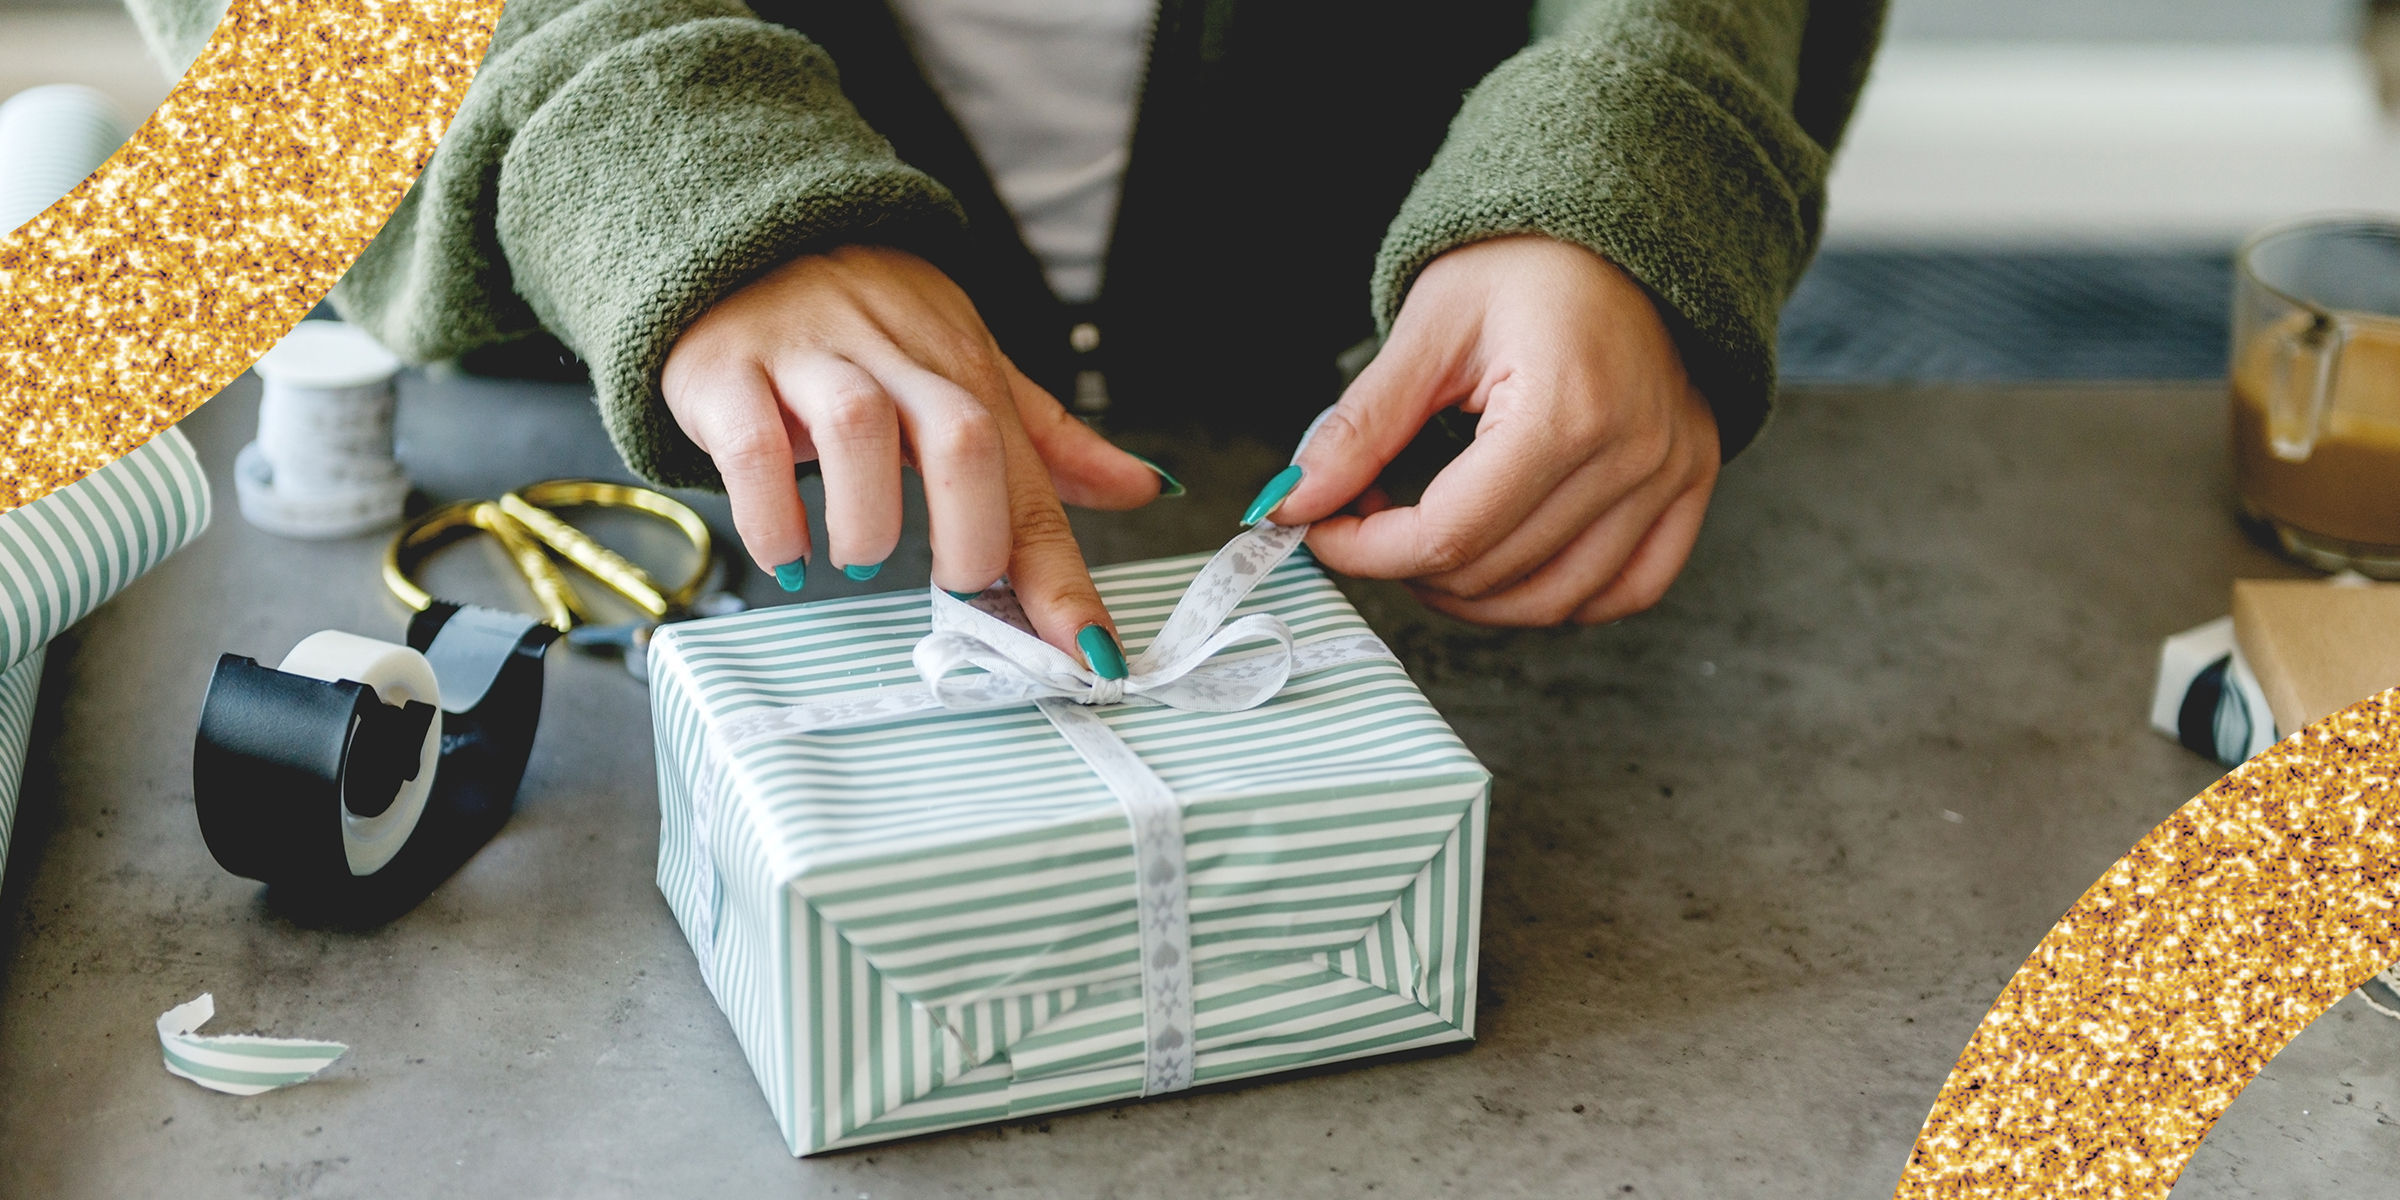 41 Last Minute Unique Gifts For Men Women Kids And Families